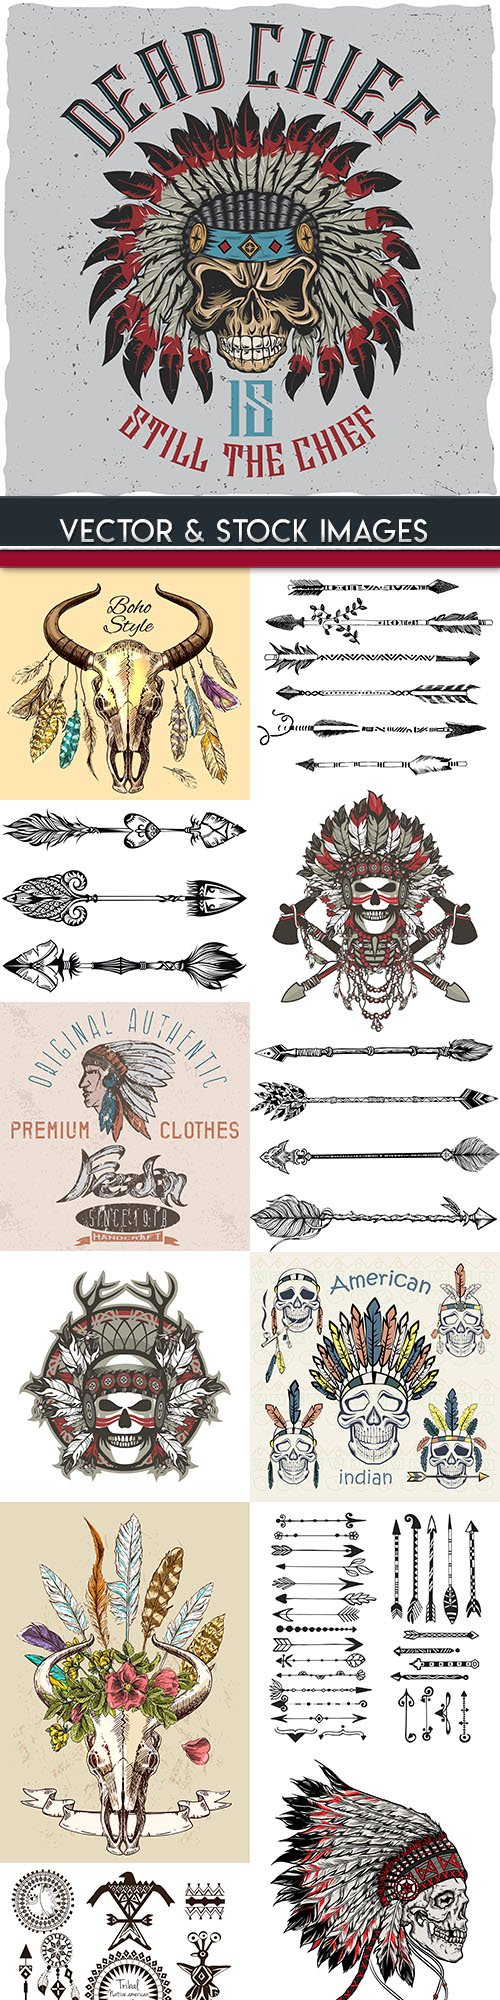 Indian skull and arrows hand drawn illustration